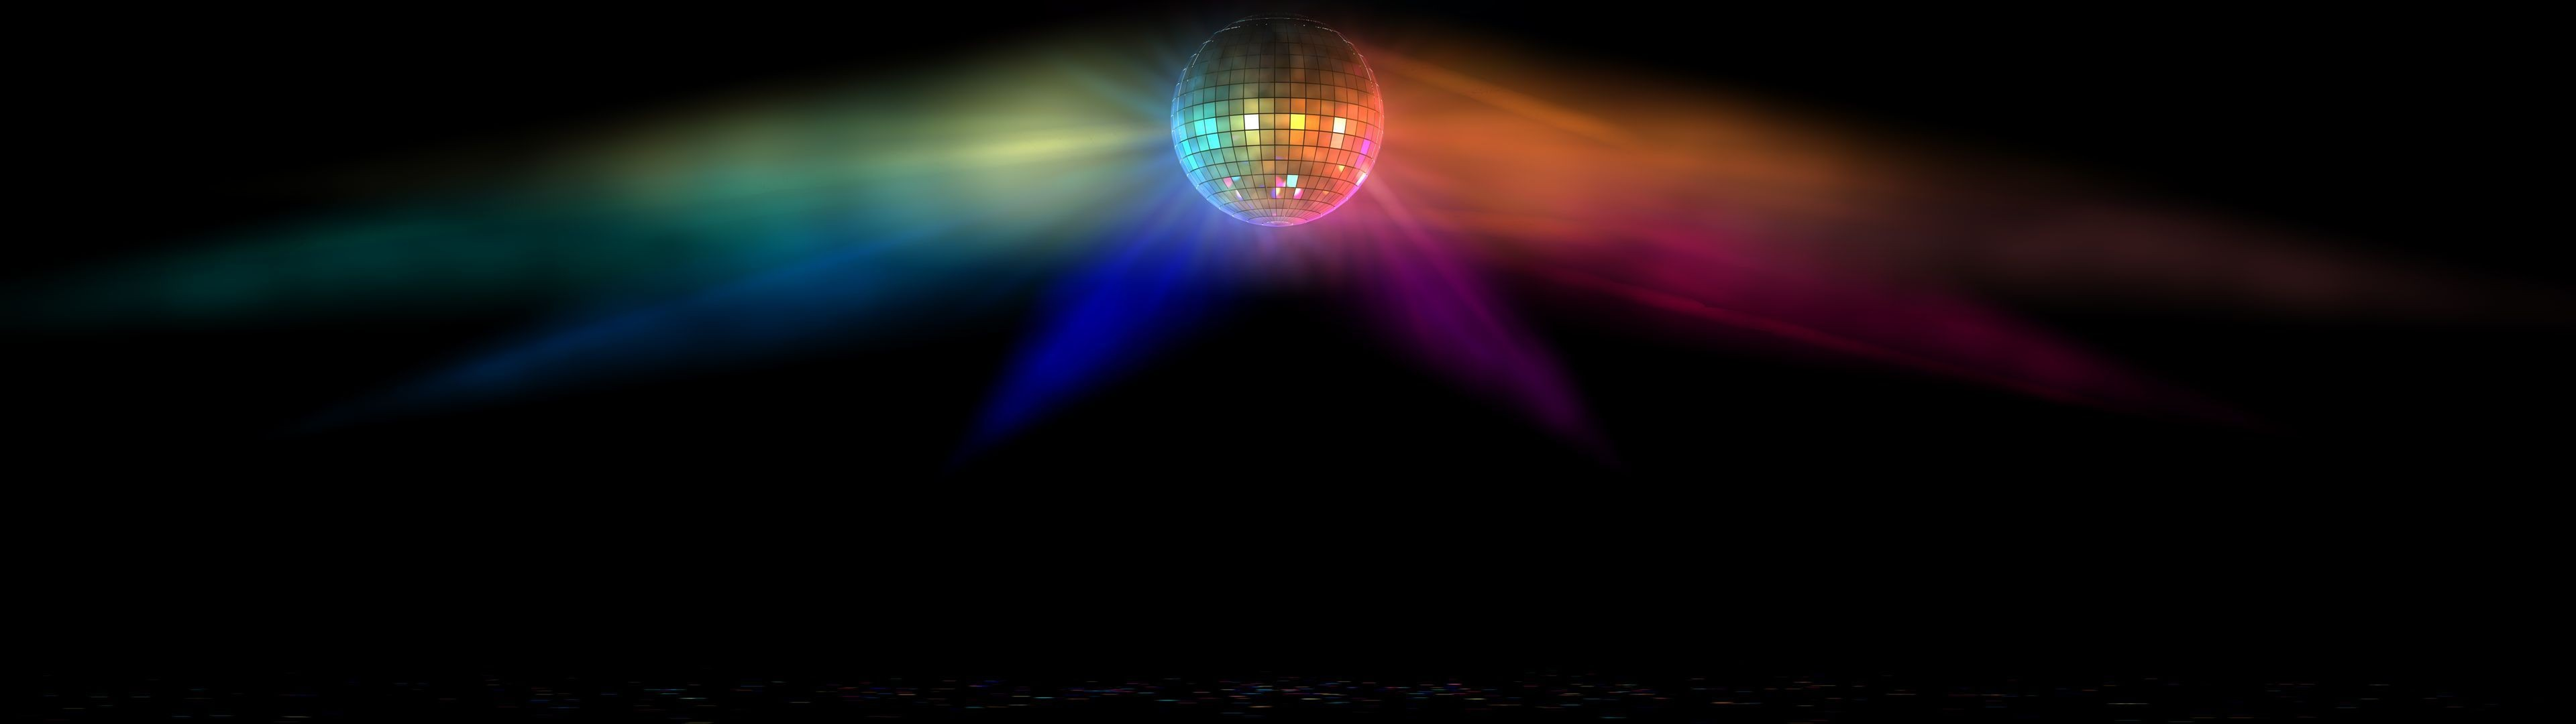 3d Effect Ipad Wallpaper Disco Background 183 ① Download Free Cool High Resolution